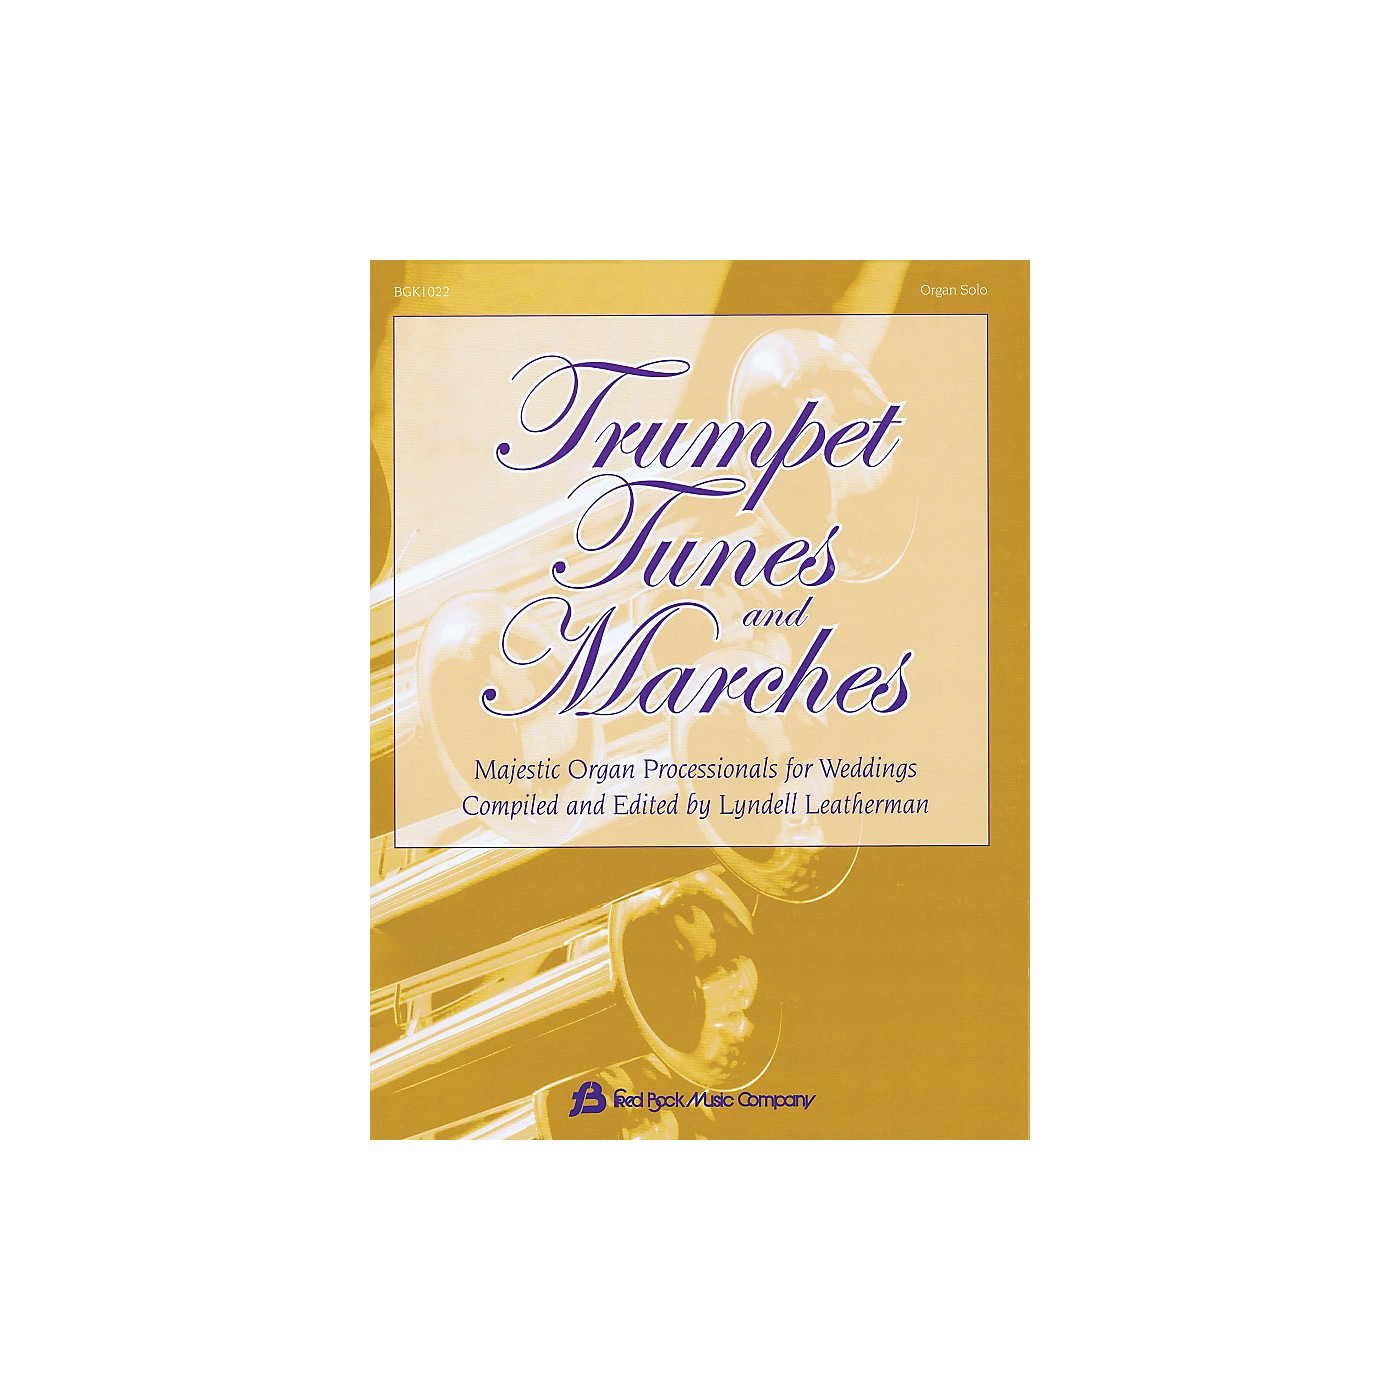 Hal Leonard Trumpet Tunes And Marches - Majestic Organ Processionals For Weddings thumbnail